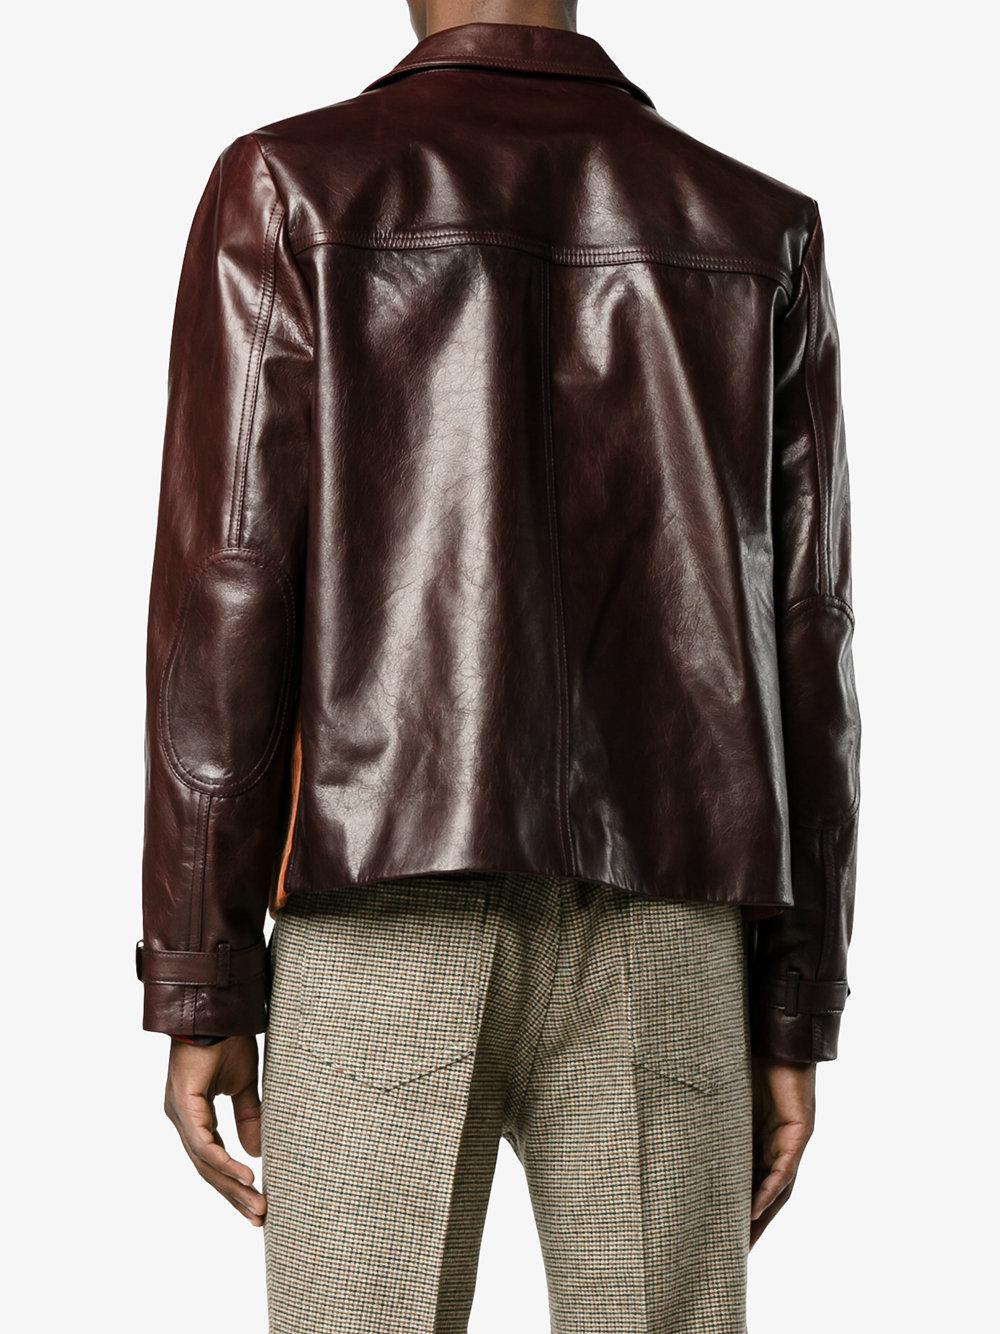 Prada Patch Pocket Leather Jacket in Red for Men